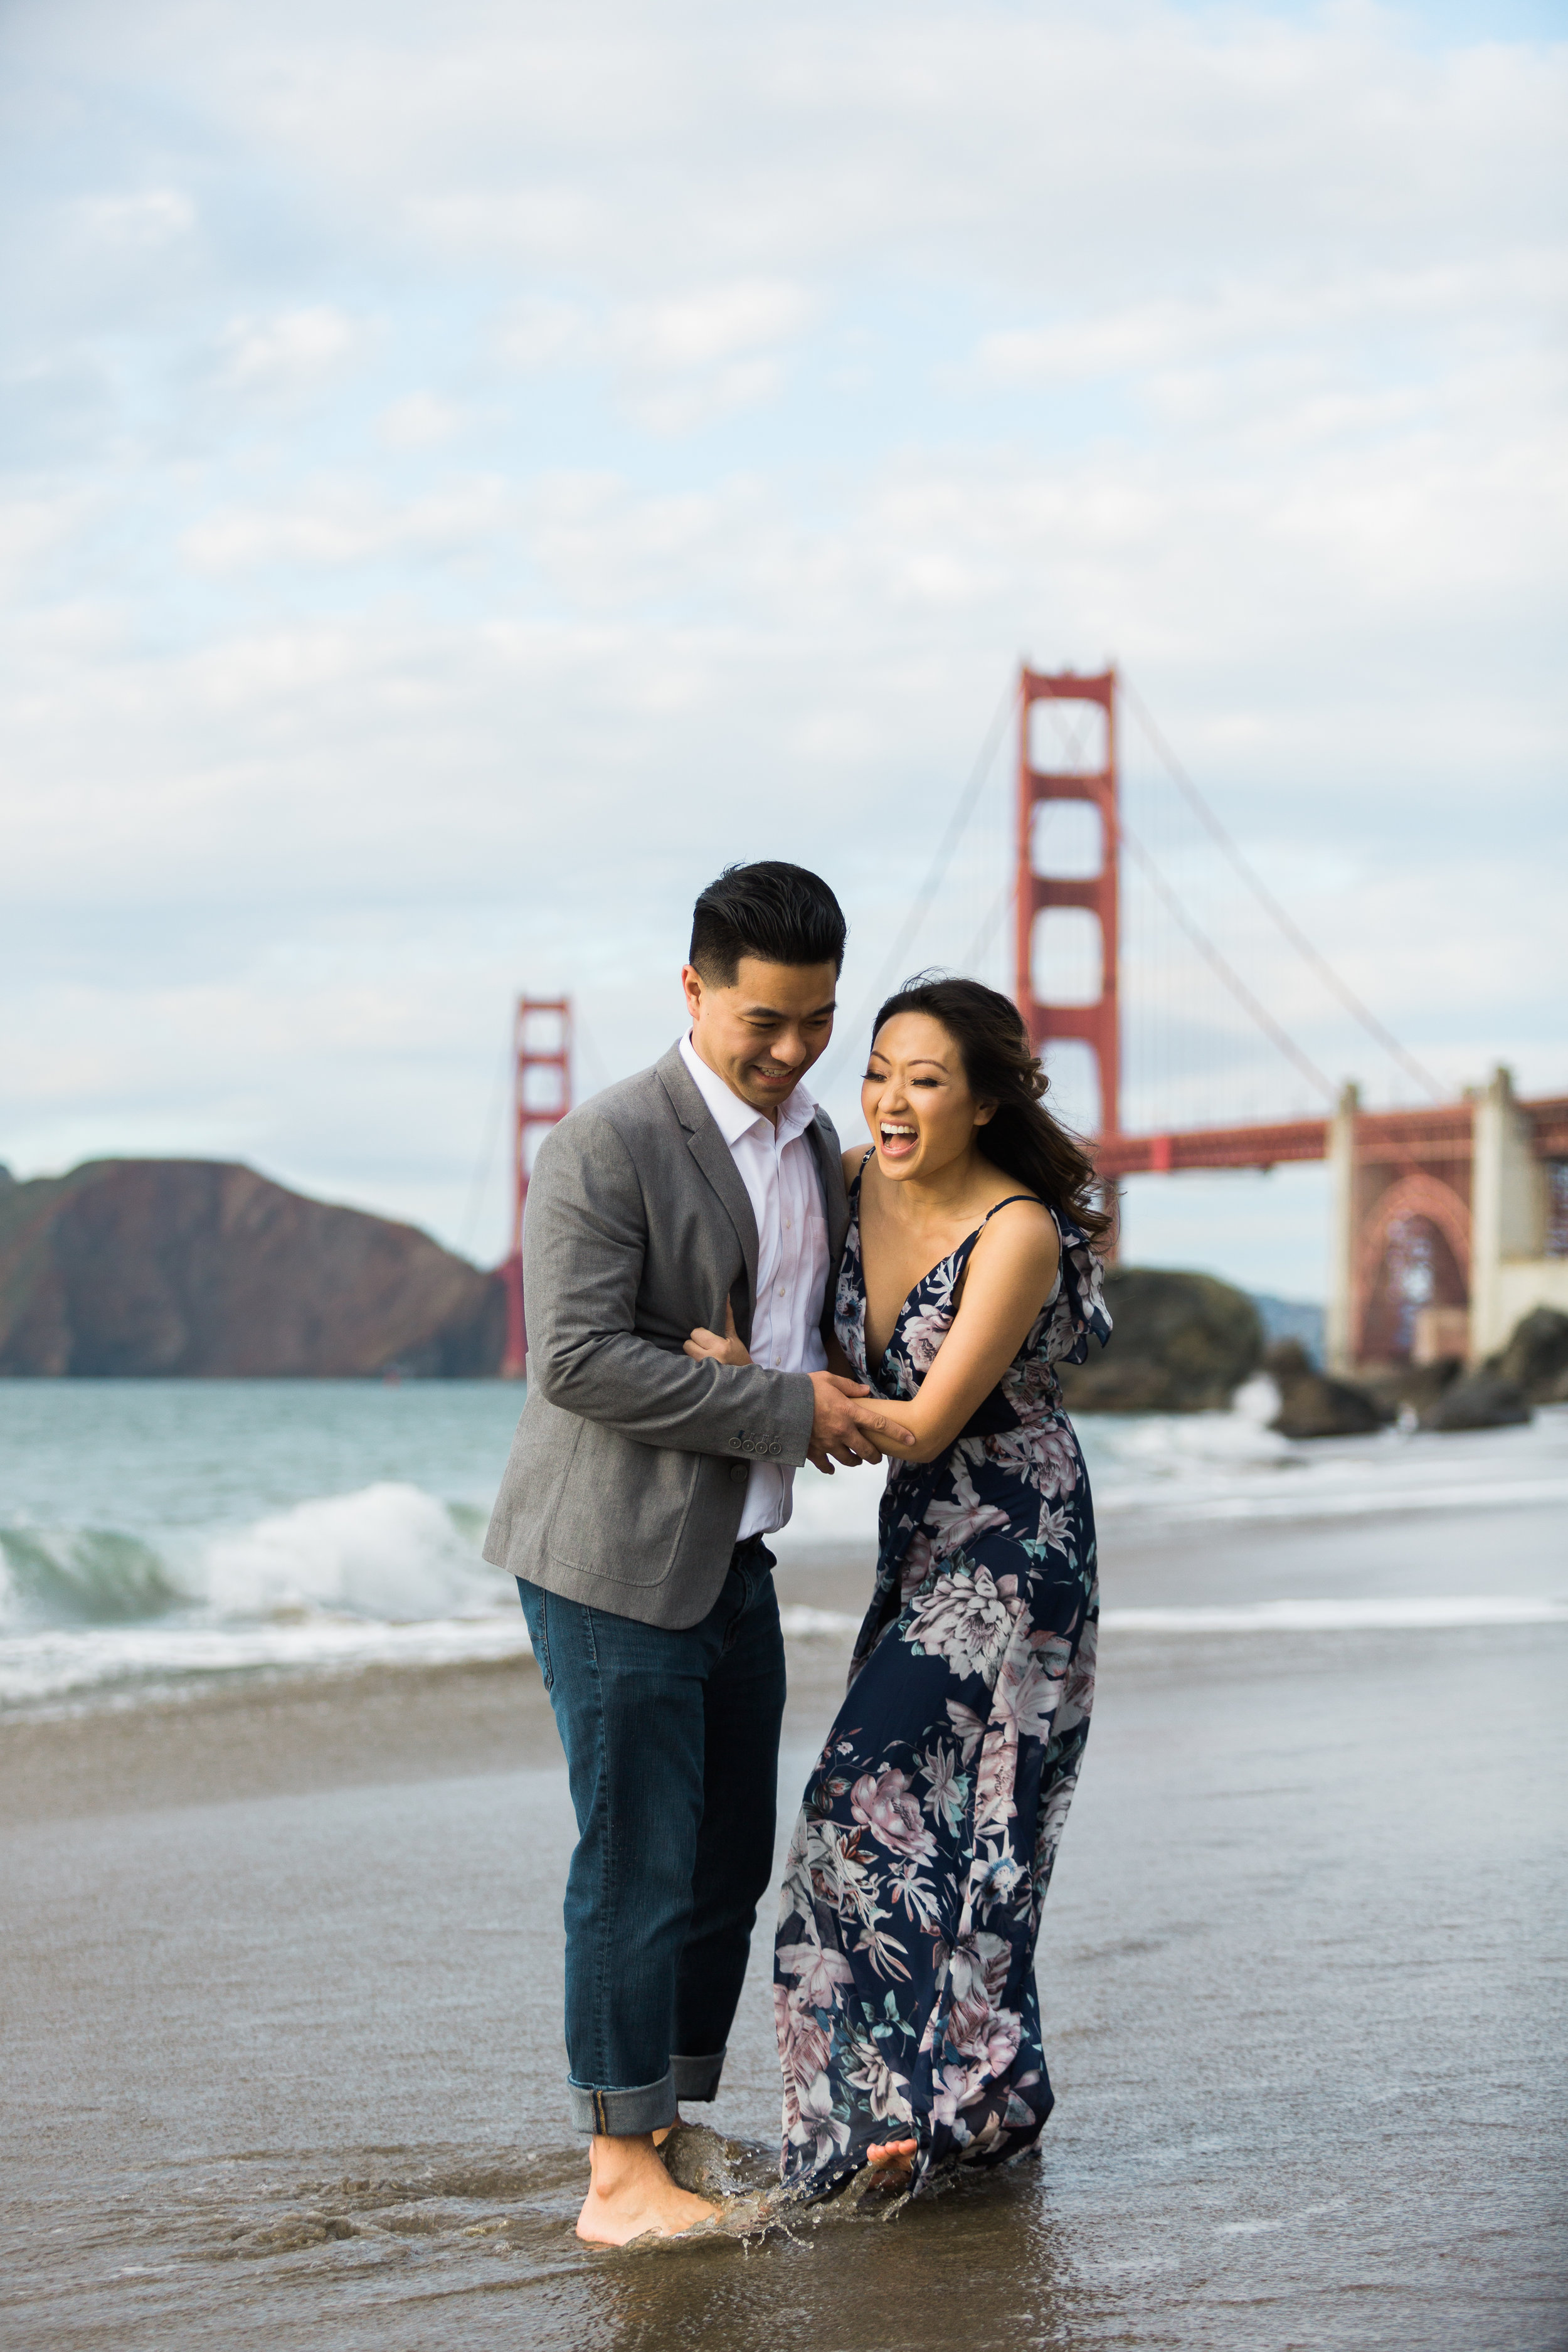 San-Francisco-Engagement-Session-Tara-Nichole-Photo-43.jpg